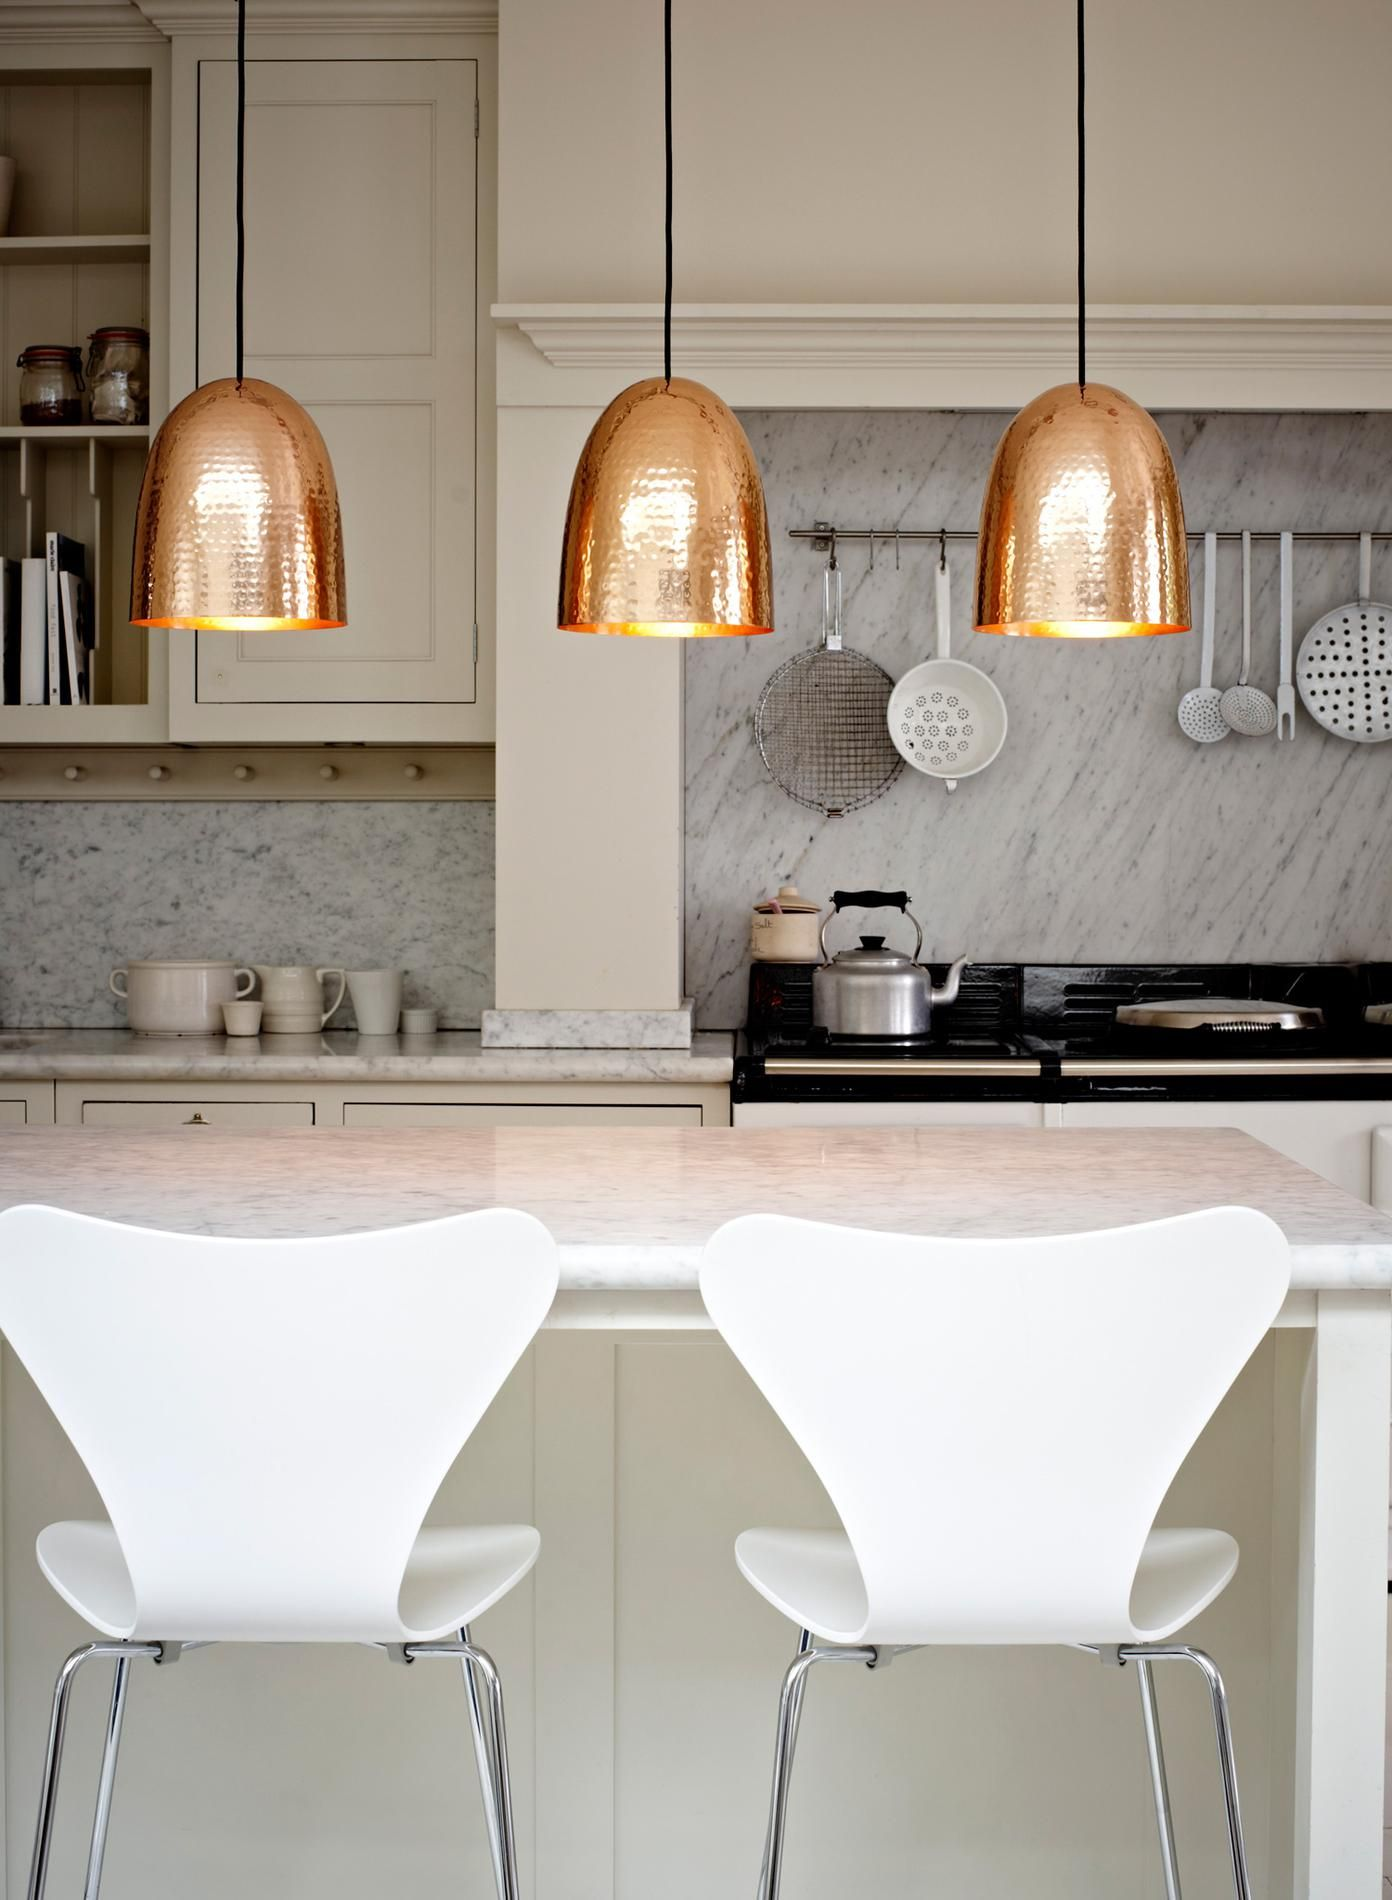 Examples Of Copper Pendant Lighting For Your Home - Black hanging kitchen lights